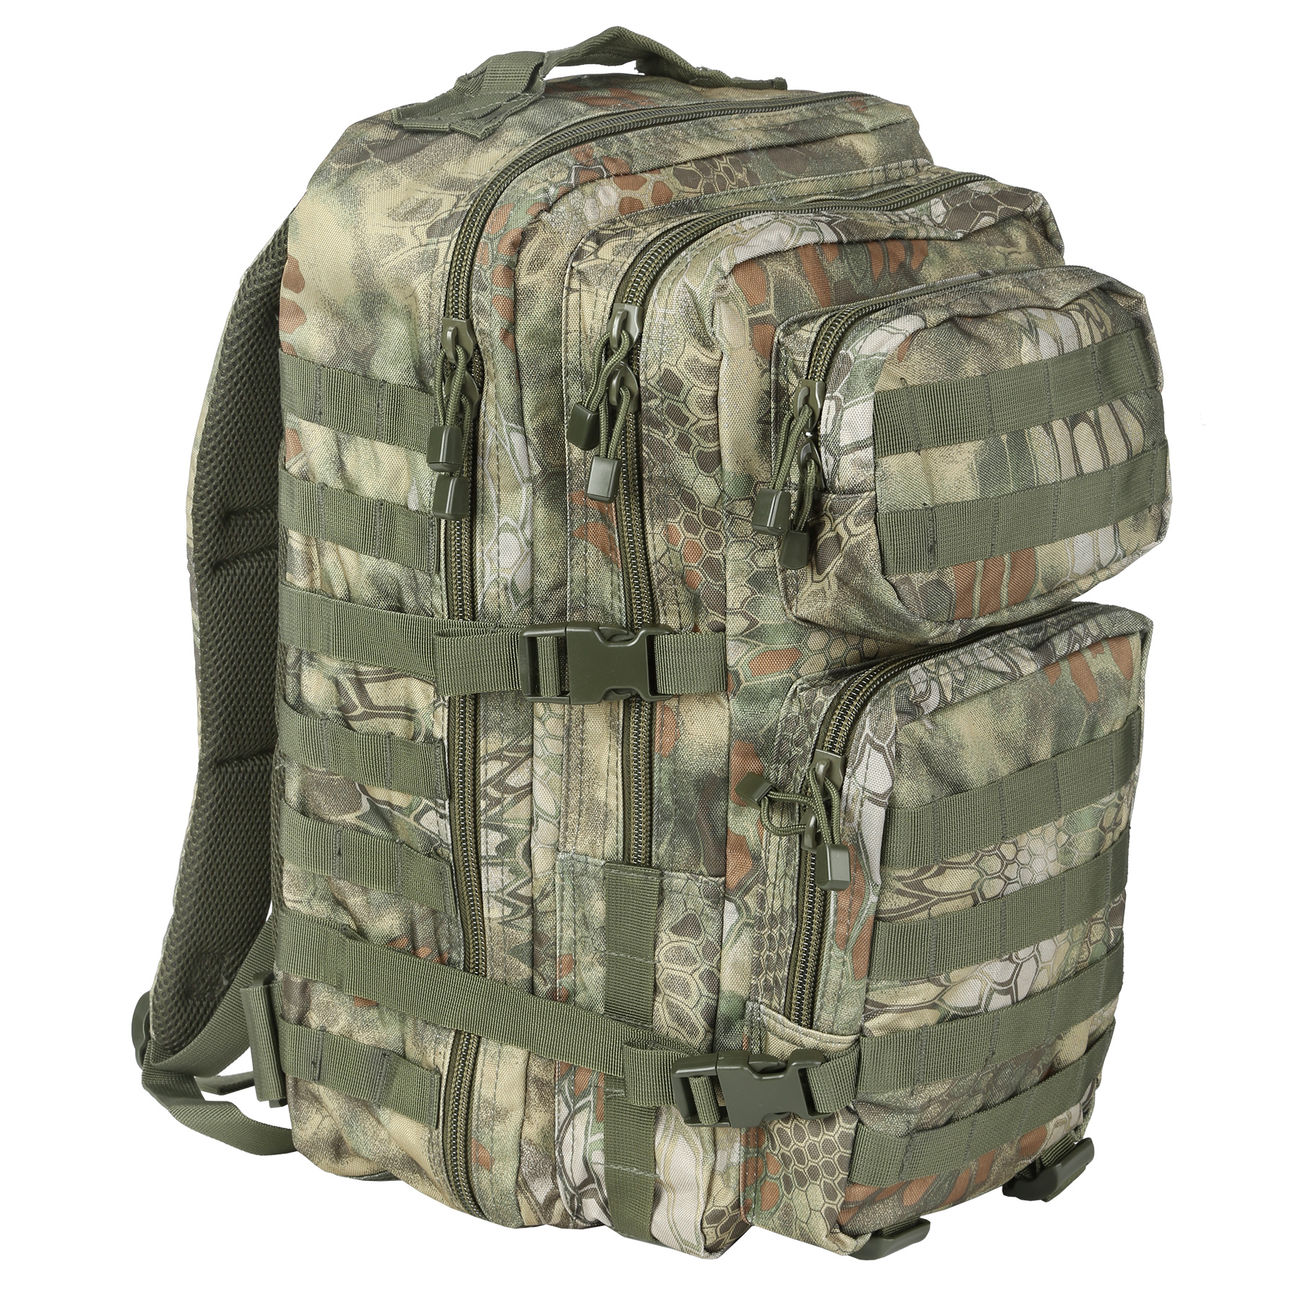 Mil-Tec Rucksack US Assault Pack II 40 Liter mandra wood 0